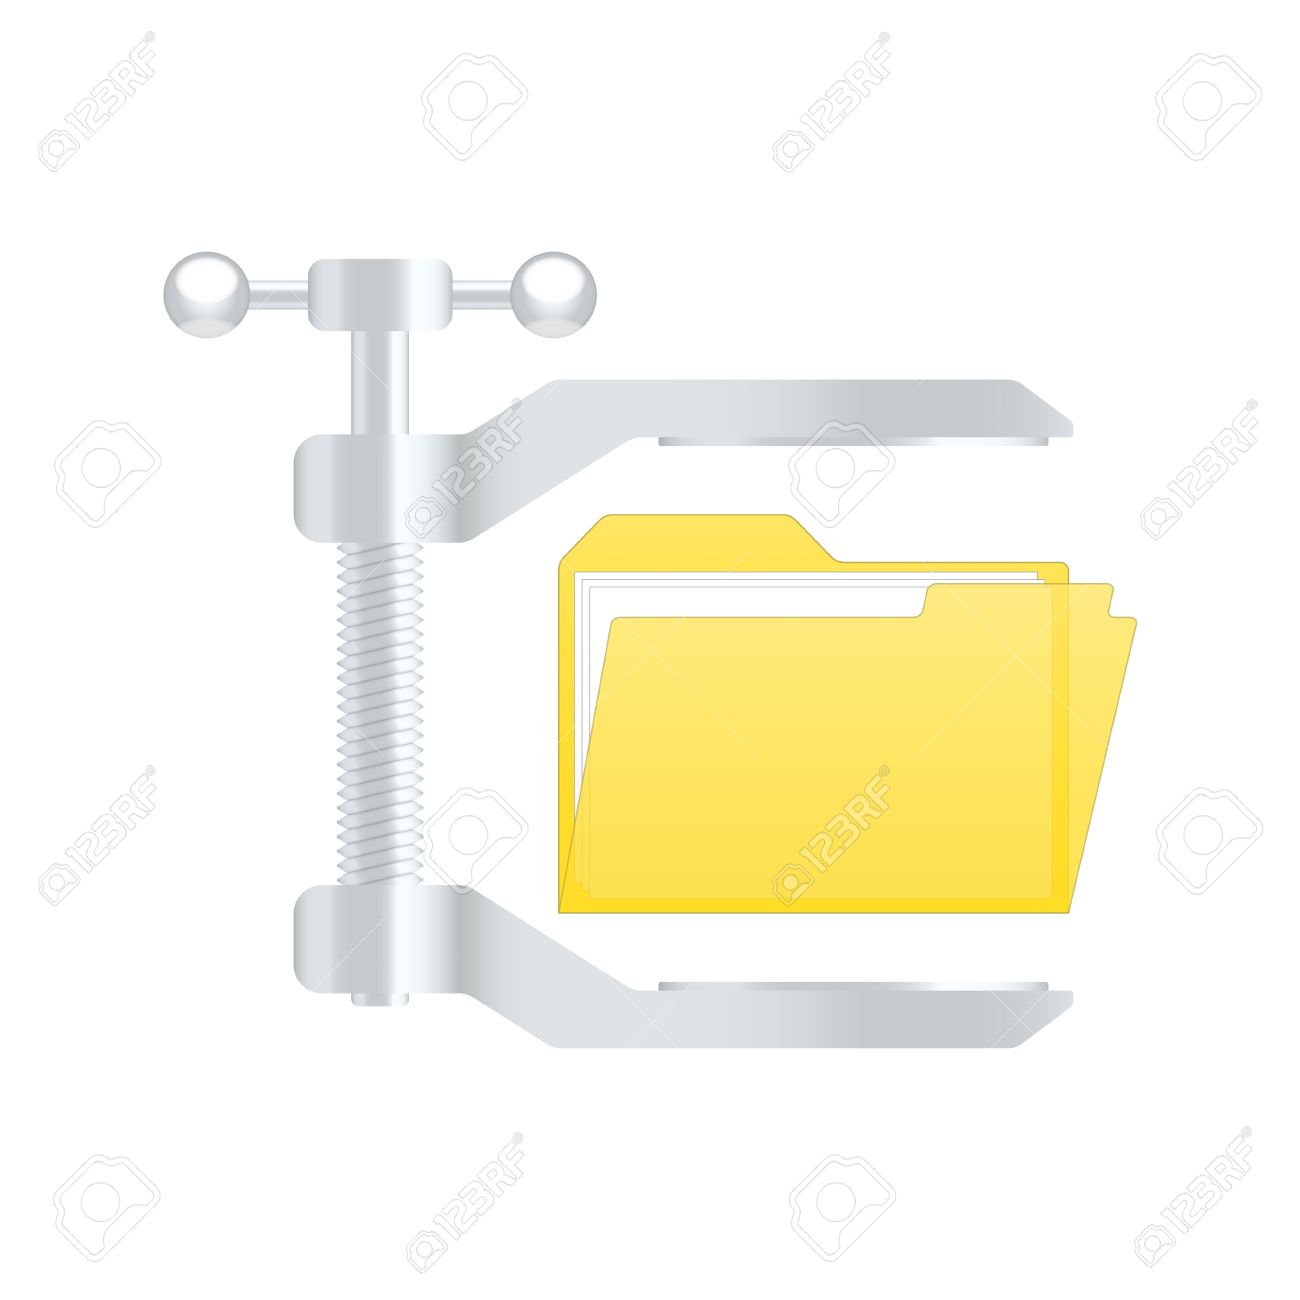 Compress archive icon. Stock Vector - 13966472